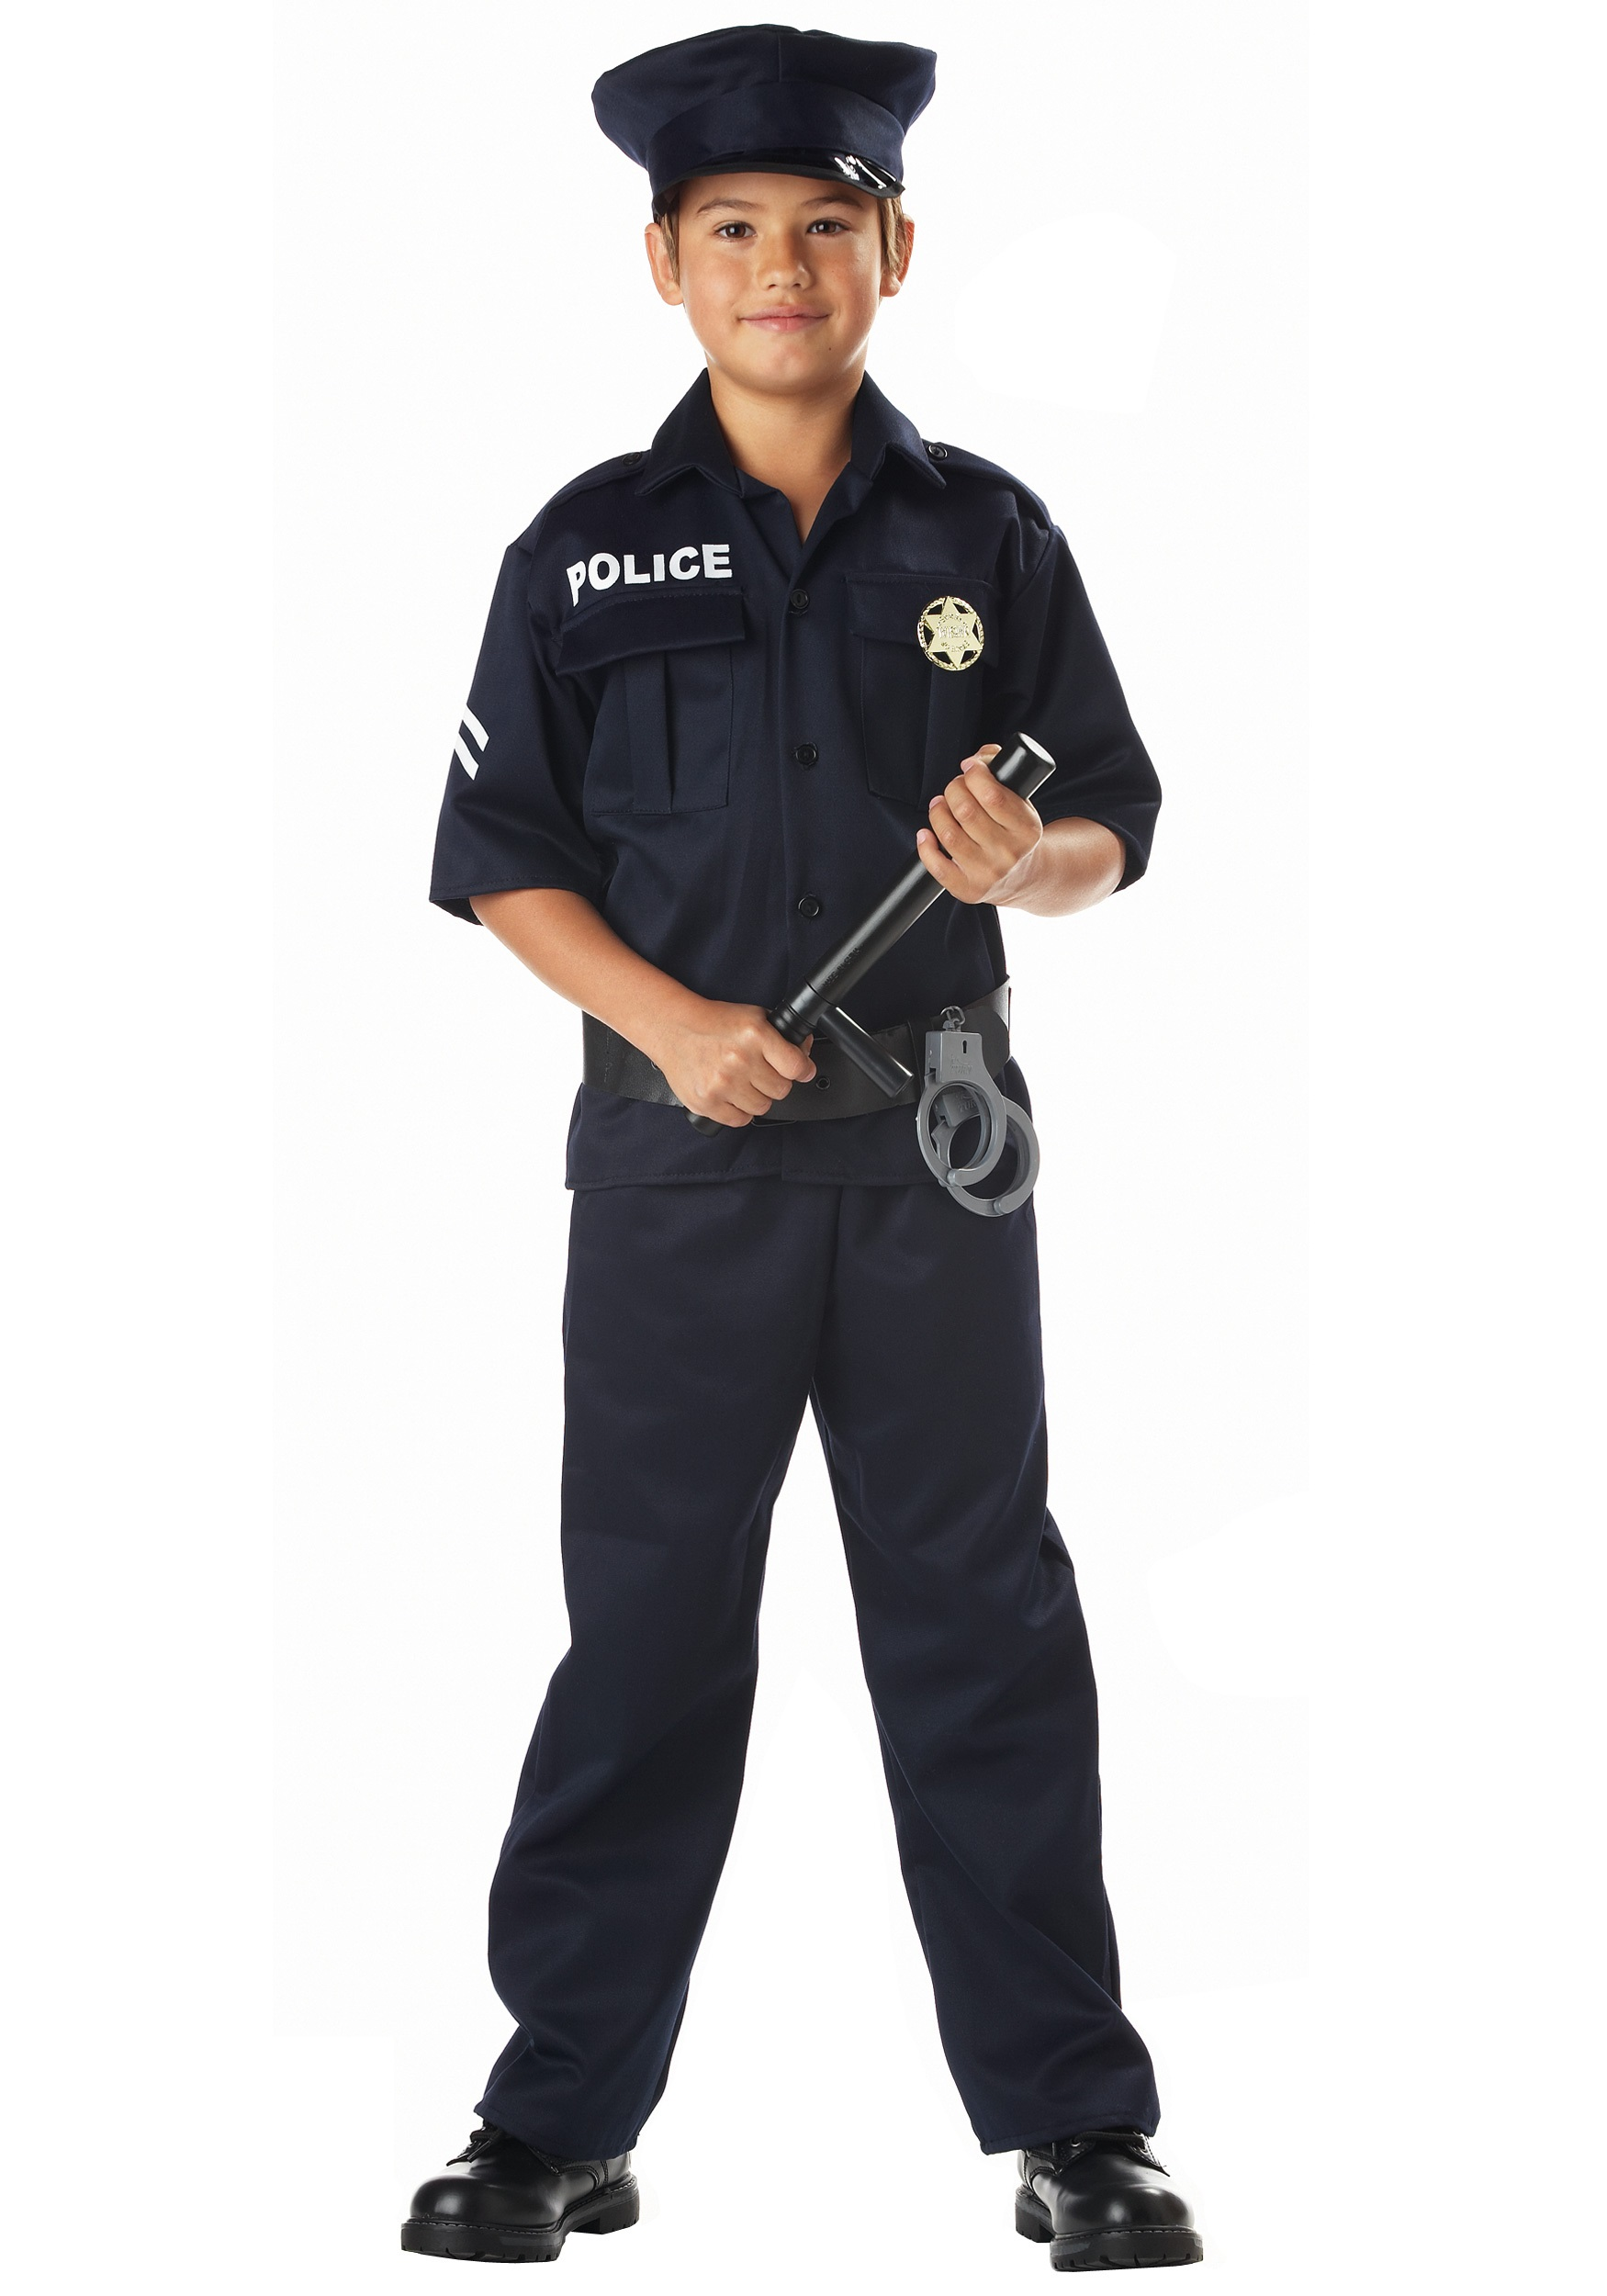 Child Police Costume  sc 1 st  Halloween Costume Ideas : police officer toddler costume  - Germanpascual.Com